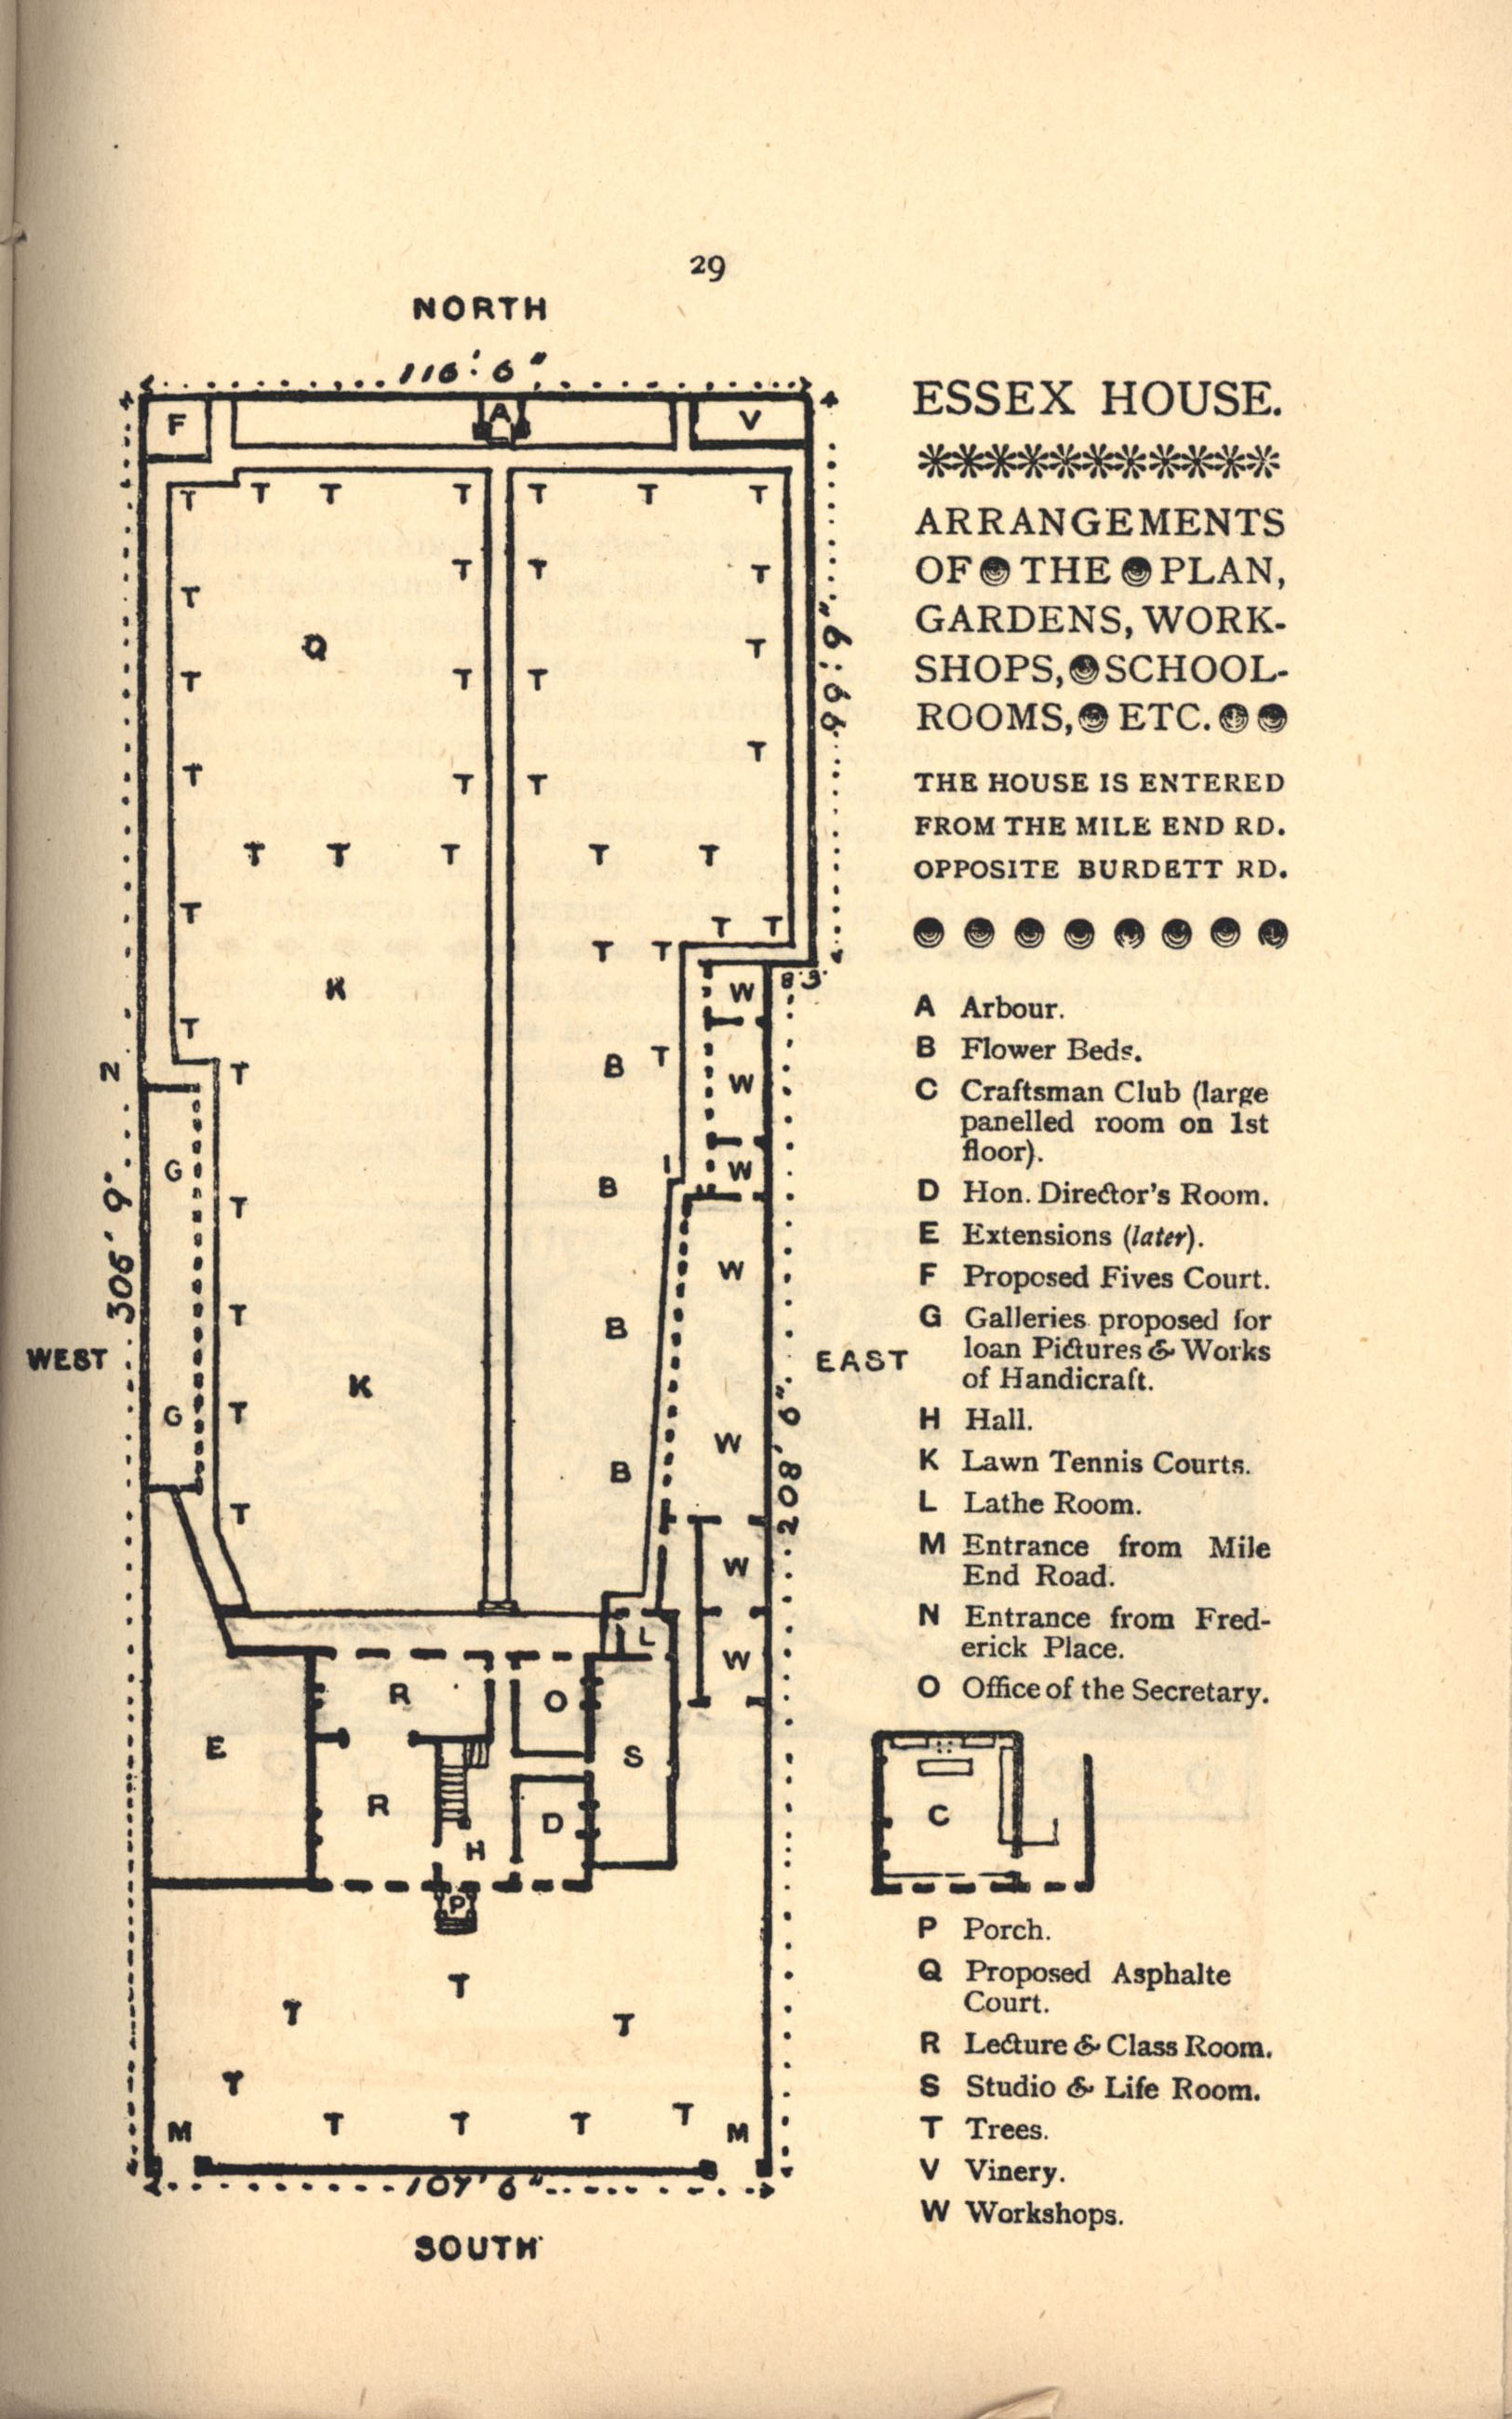 Plan of Essex House, Mile End. [Ashbee (1890) 'Transactions of the Guild & School of Handicraft, vol. I., 1890', p.29]